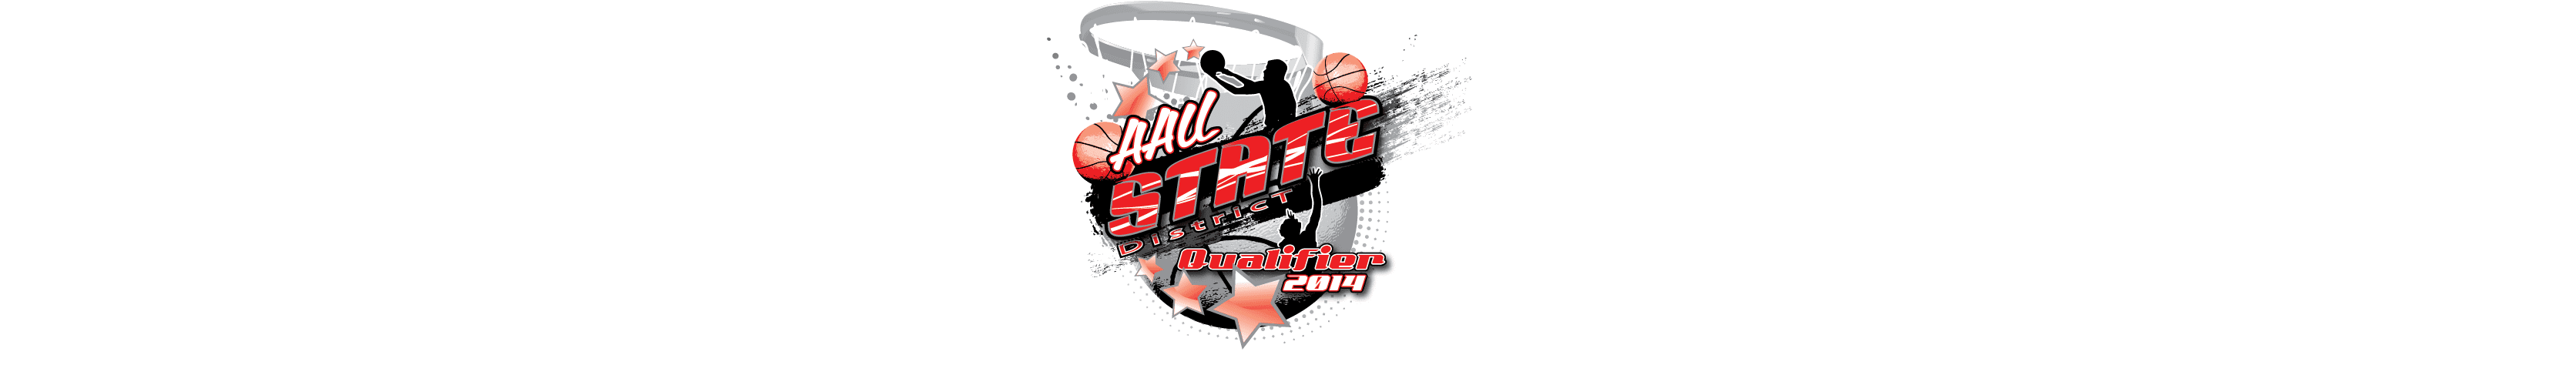 VECTOR LOGO DESIGN FOR PRINT AAU STATE DISTRICT QUALIFIER BASKETBALL EVENT